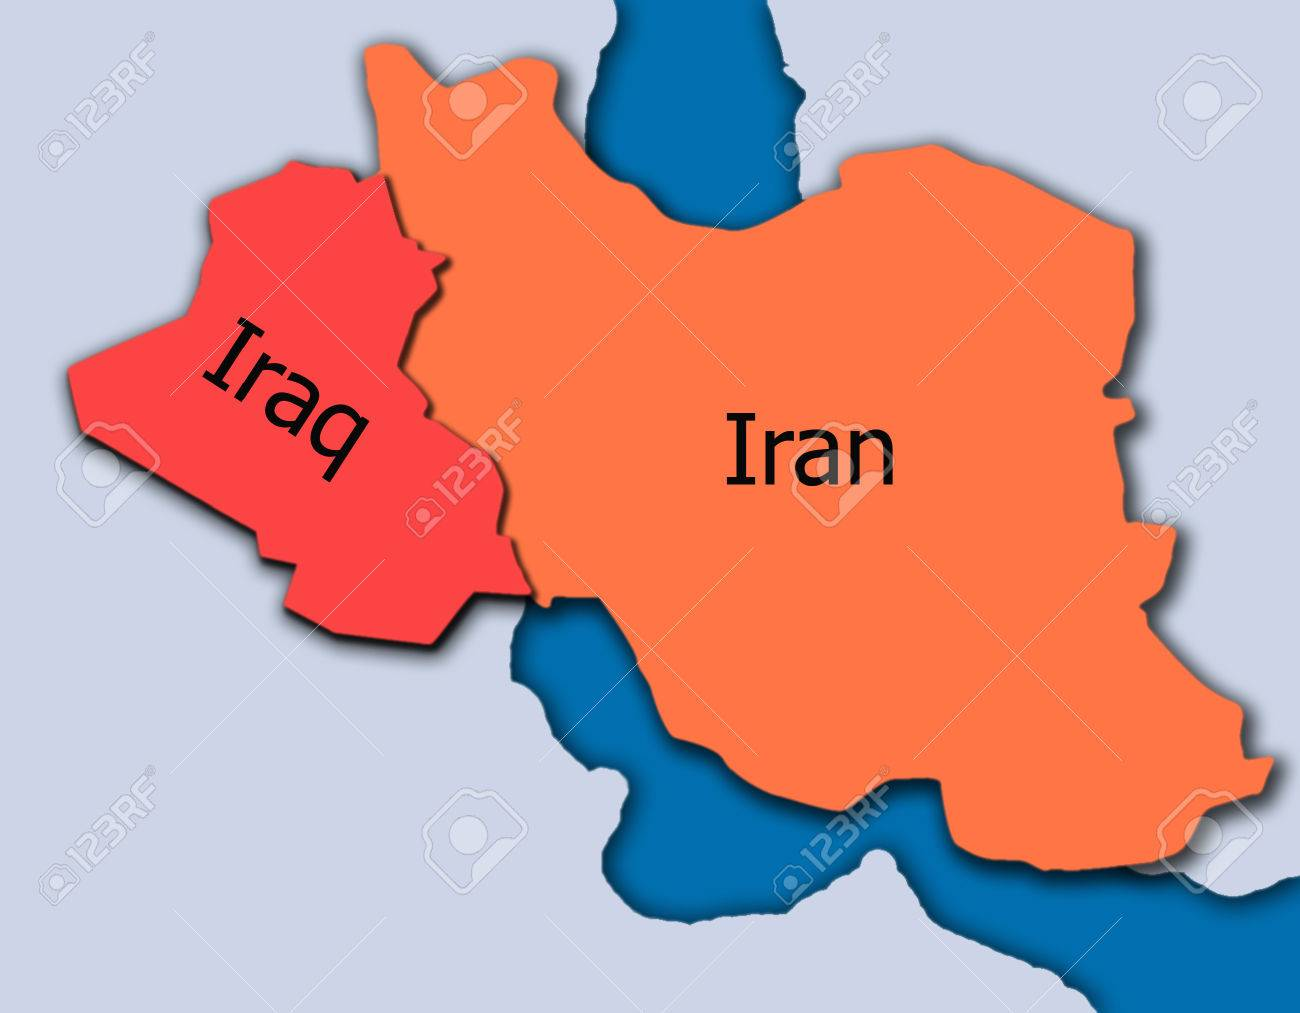 Iran And Iraq Map 3d Stock Photo Picture And Royalty Free Image